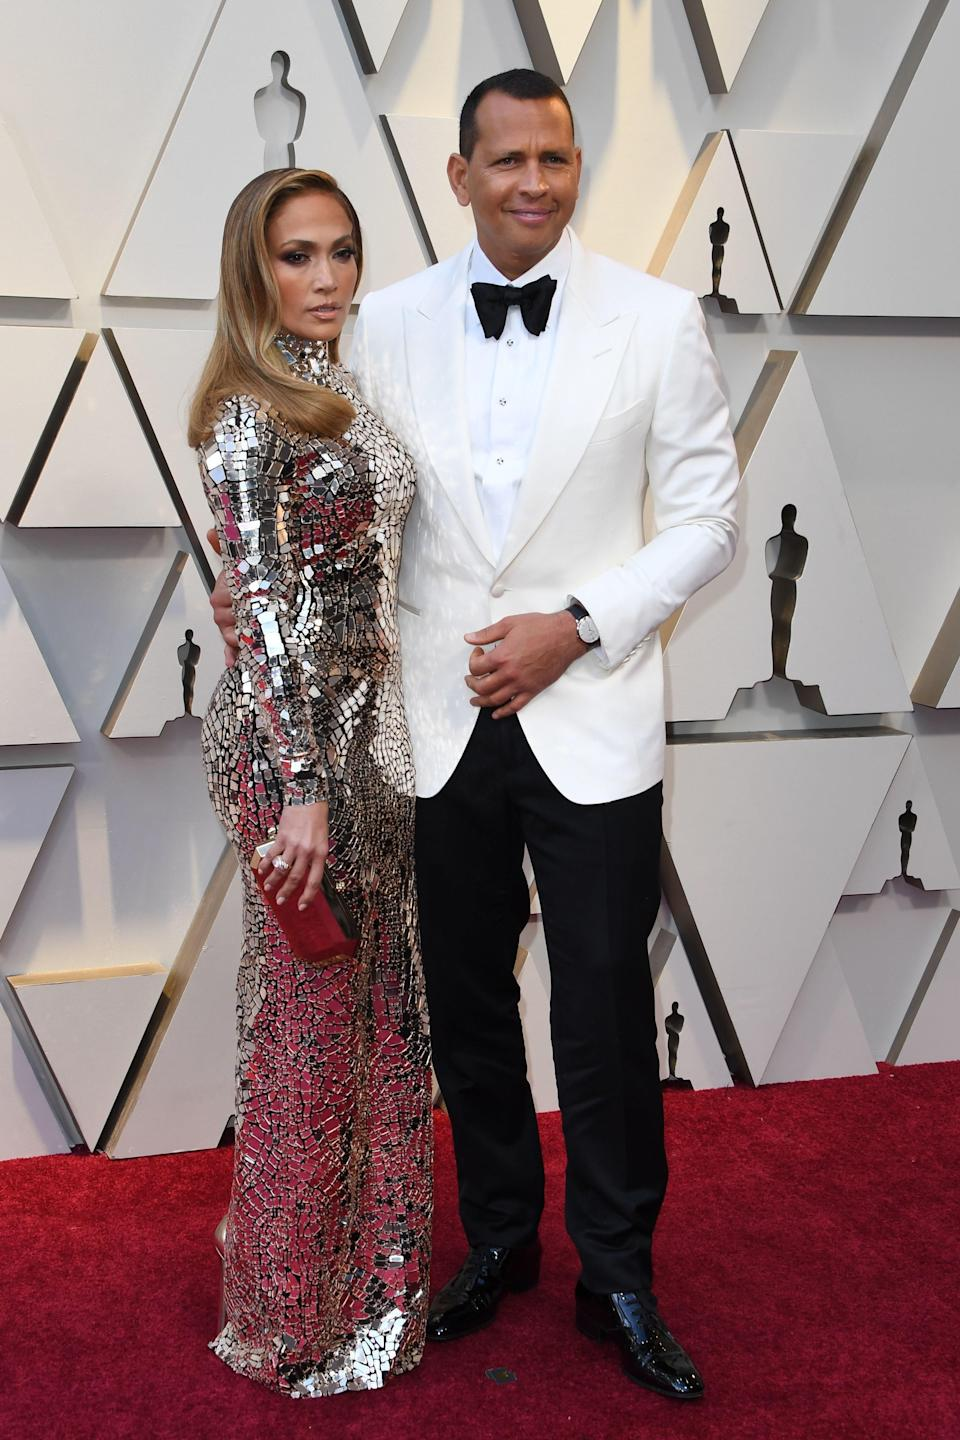 Jennifer Lopez and Alex Rodriguez both in Tom Ford